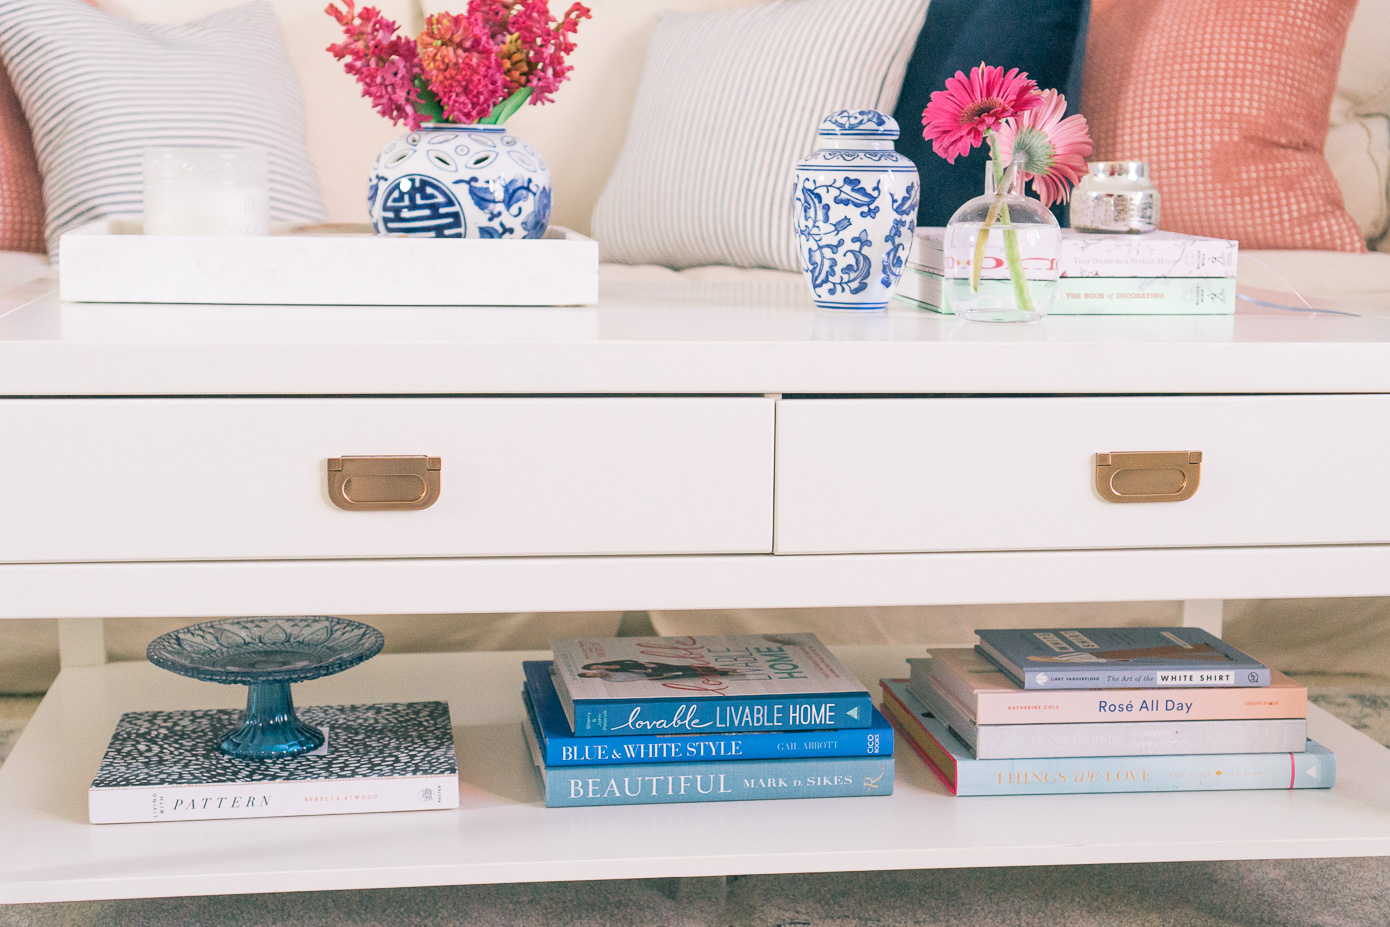 Styling Coffee Table Books | Louella Reese Life & Style Blog